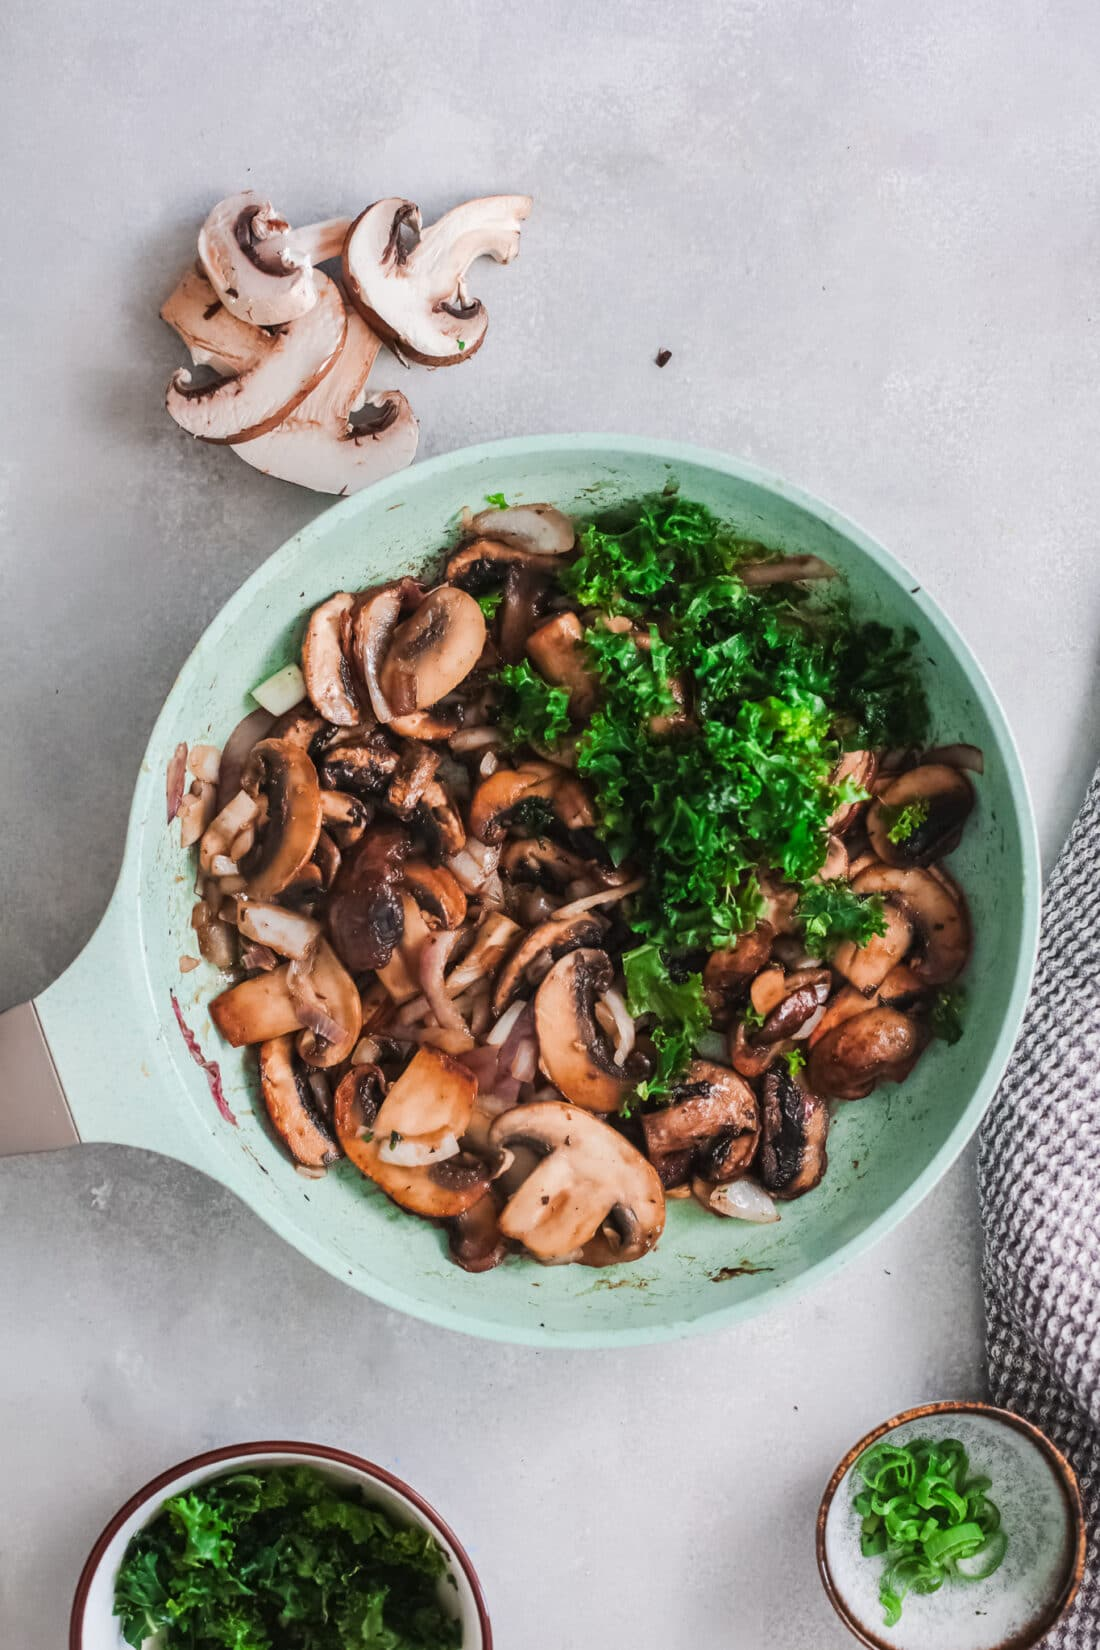 Vegetarian Korean Noodle Step 7. This simple and easy Vegetarian Korean Noodles dish is full of flavor and can be made in under 30 minutes. The Korean noodles are stir-fried in a savory sauce made with fresh vegetables such as mushrooms, red onion, ginger, garlic, and kale.